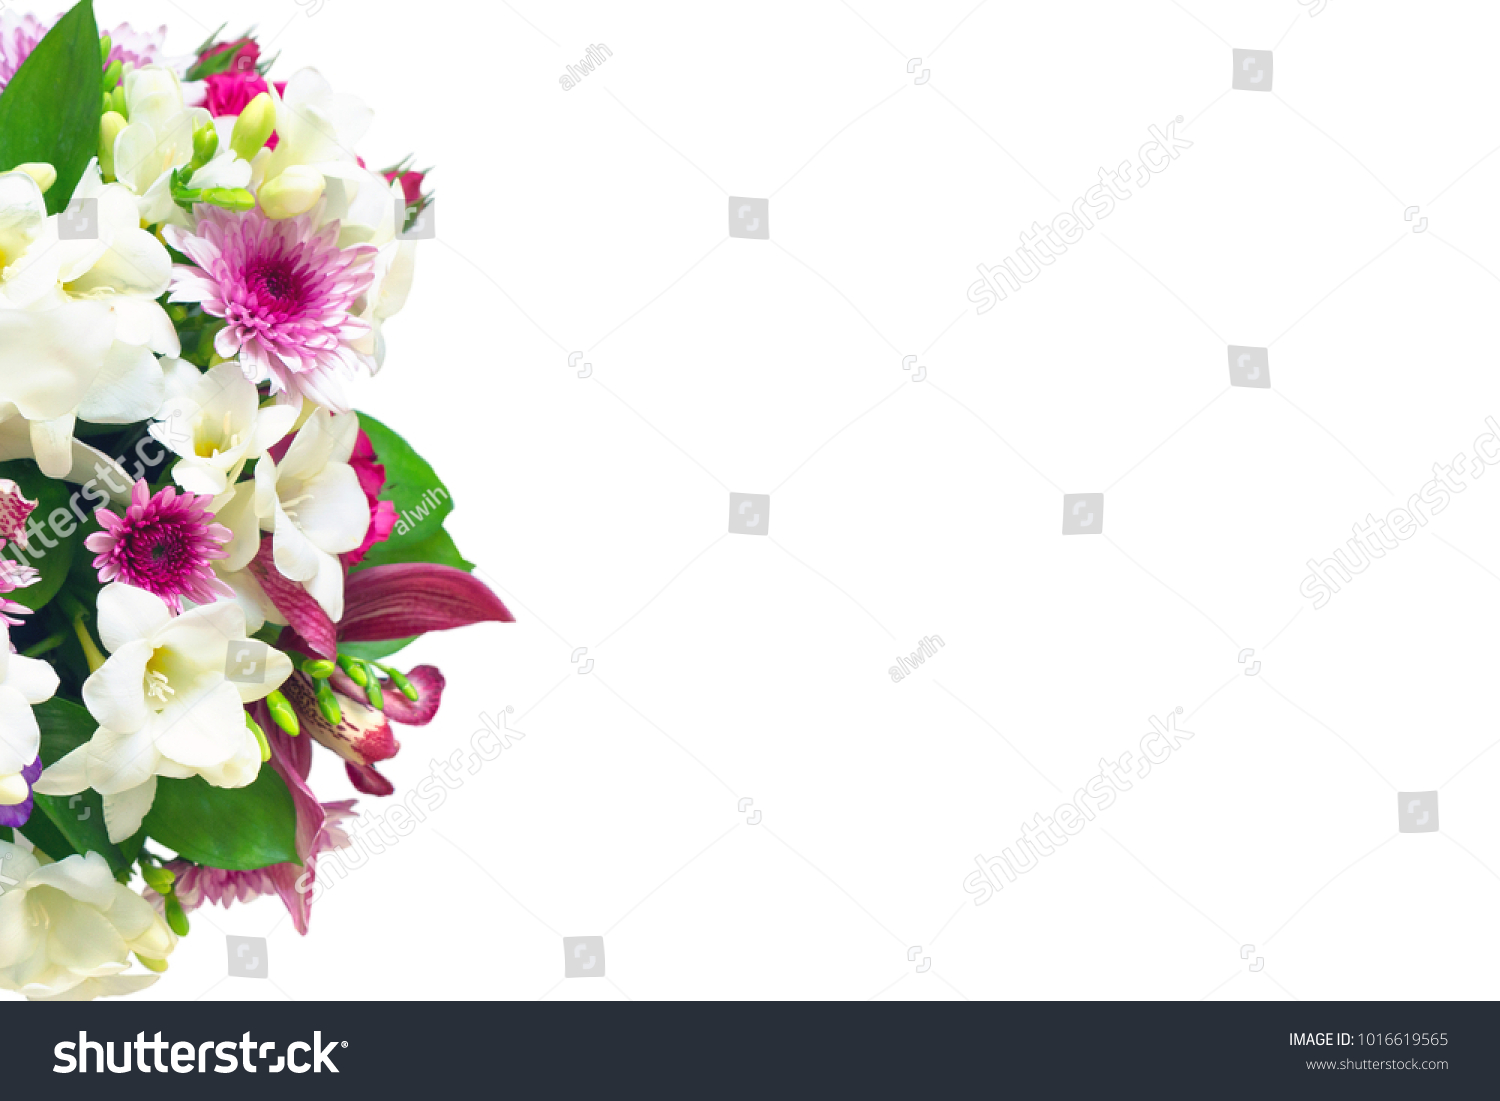 Background bouquet flowers place insert text stock photo edit now background with a bouquet of flowers place to insert text for bloggers congratulations izmirmasajfo